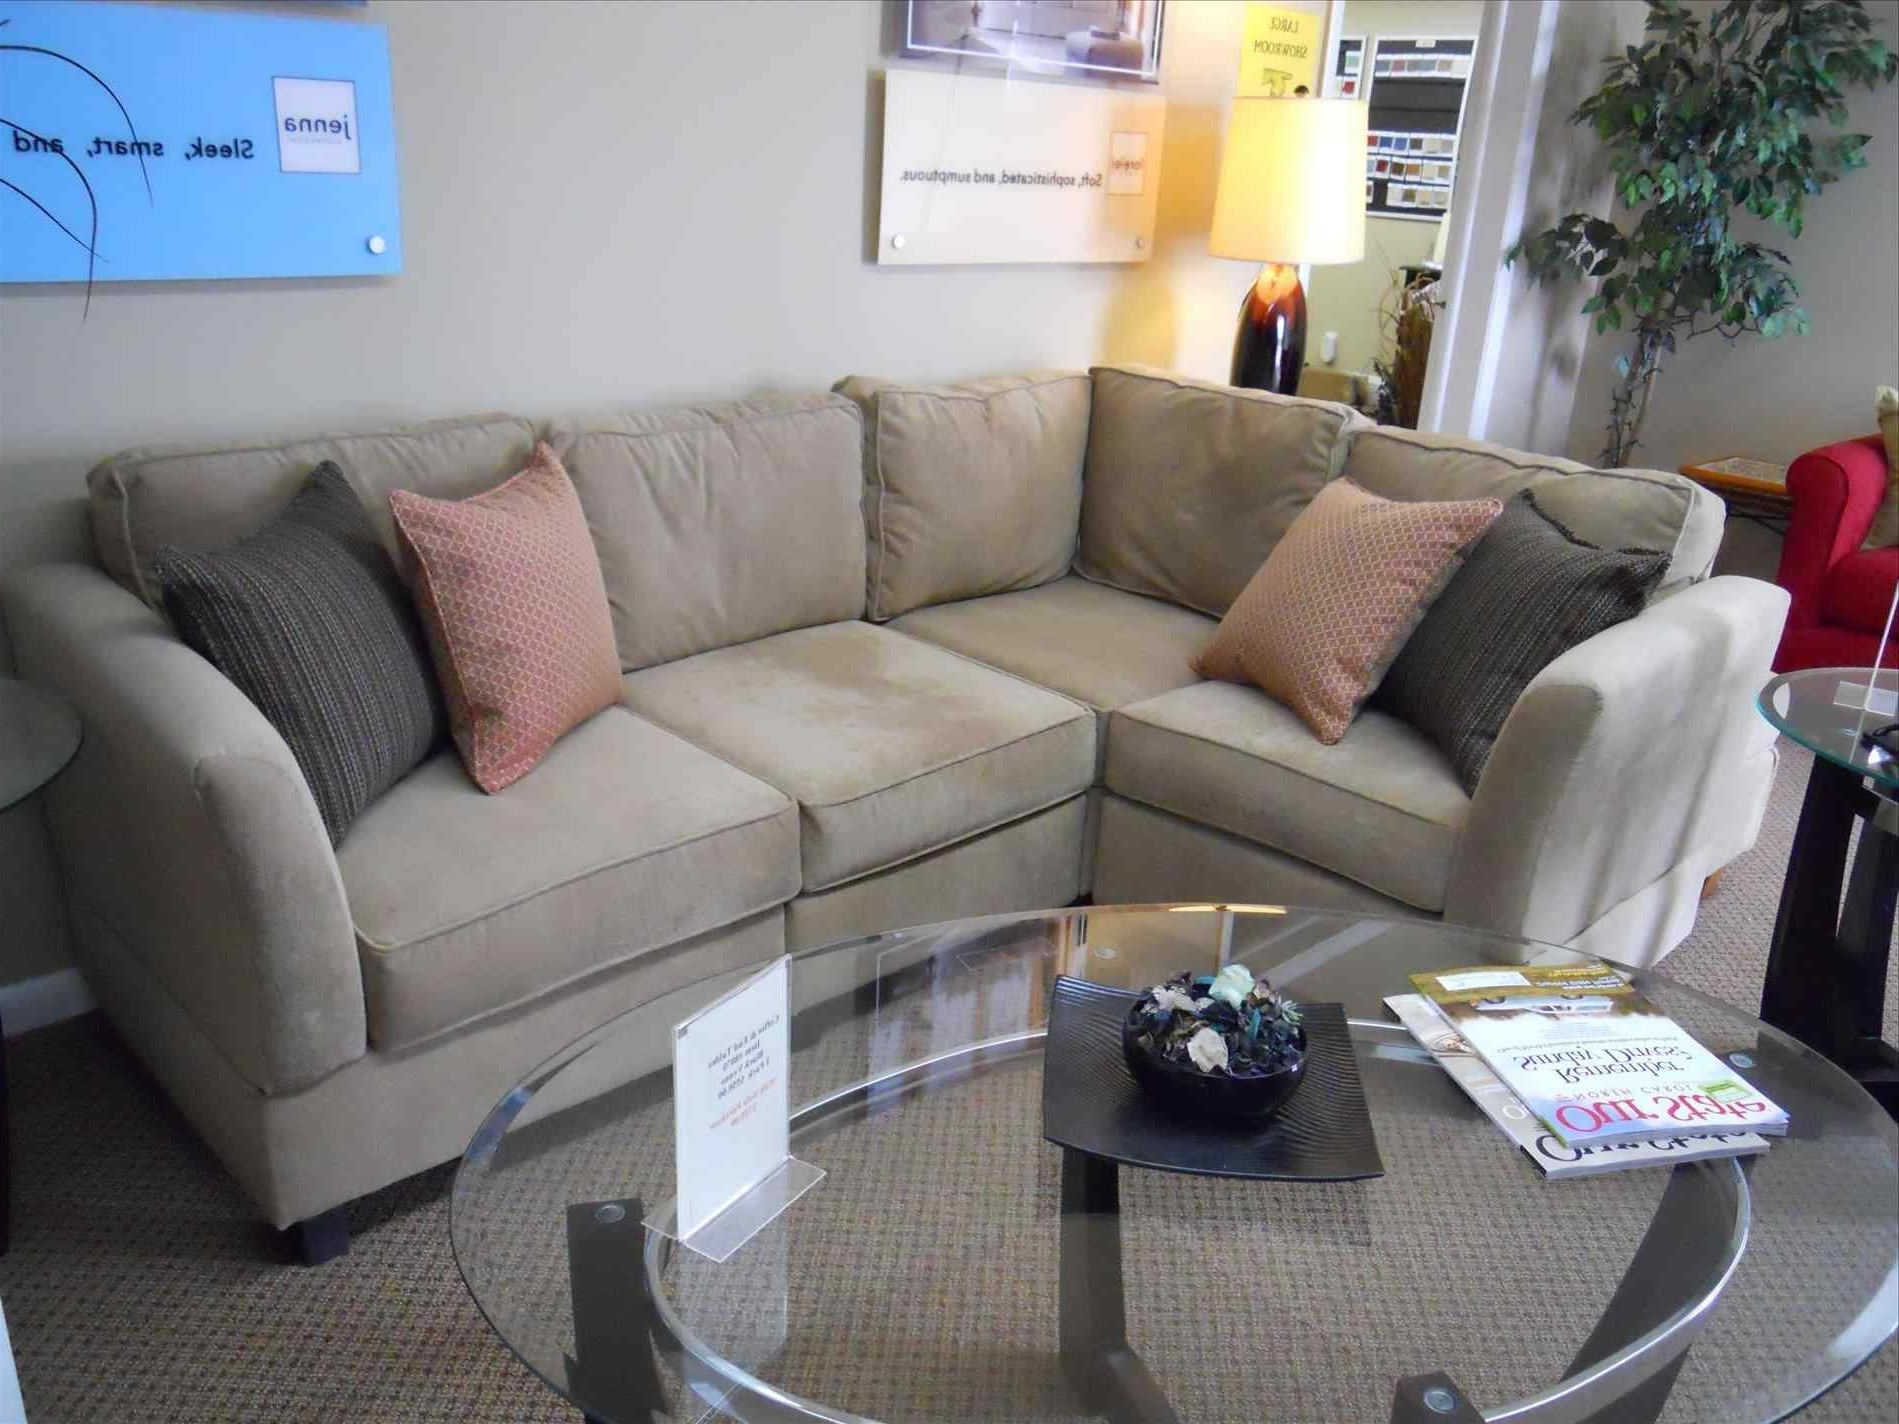 Preferred Modern Sectional Sofas For Small Spaces With Regard To For Cozy Living Room Lazy Boy Chair Home Designs Lazy Sectional (View 5 of 15)